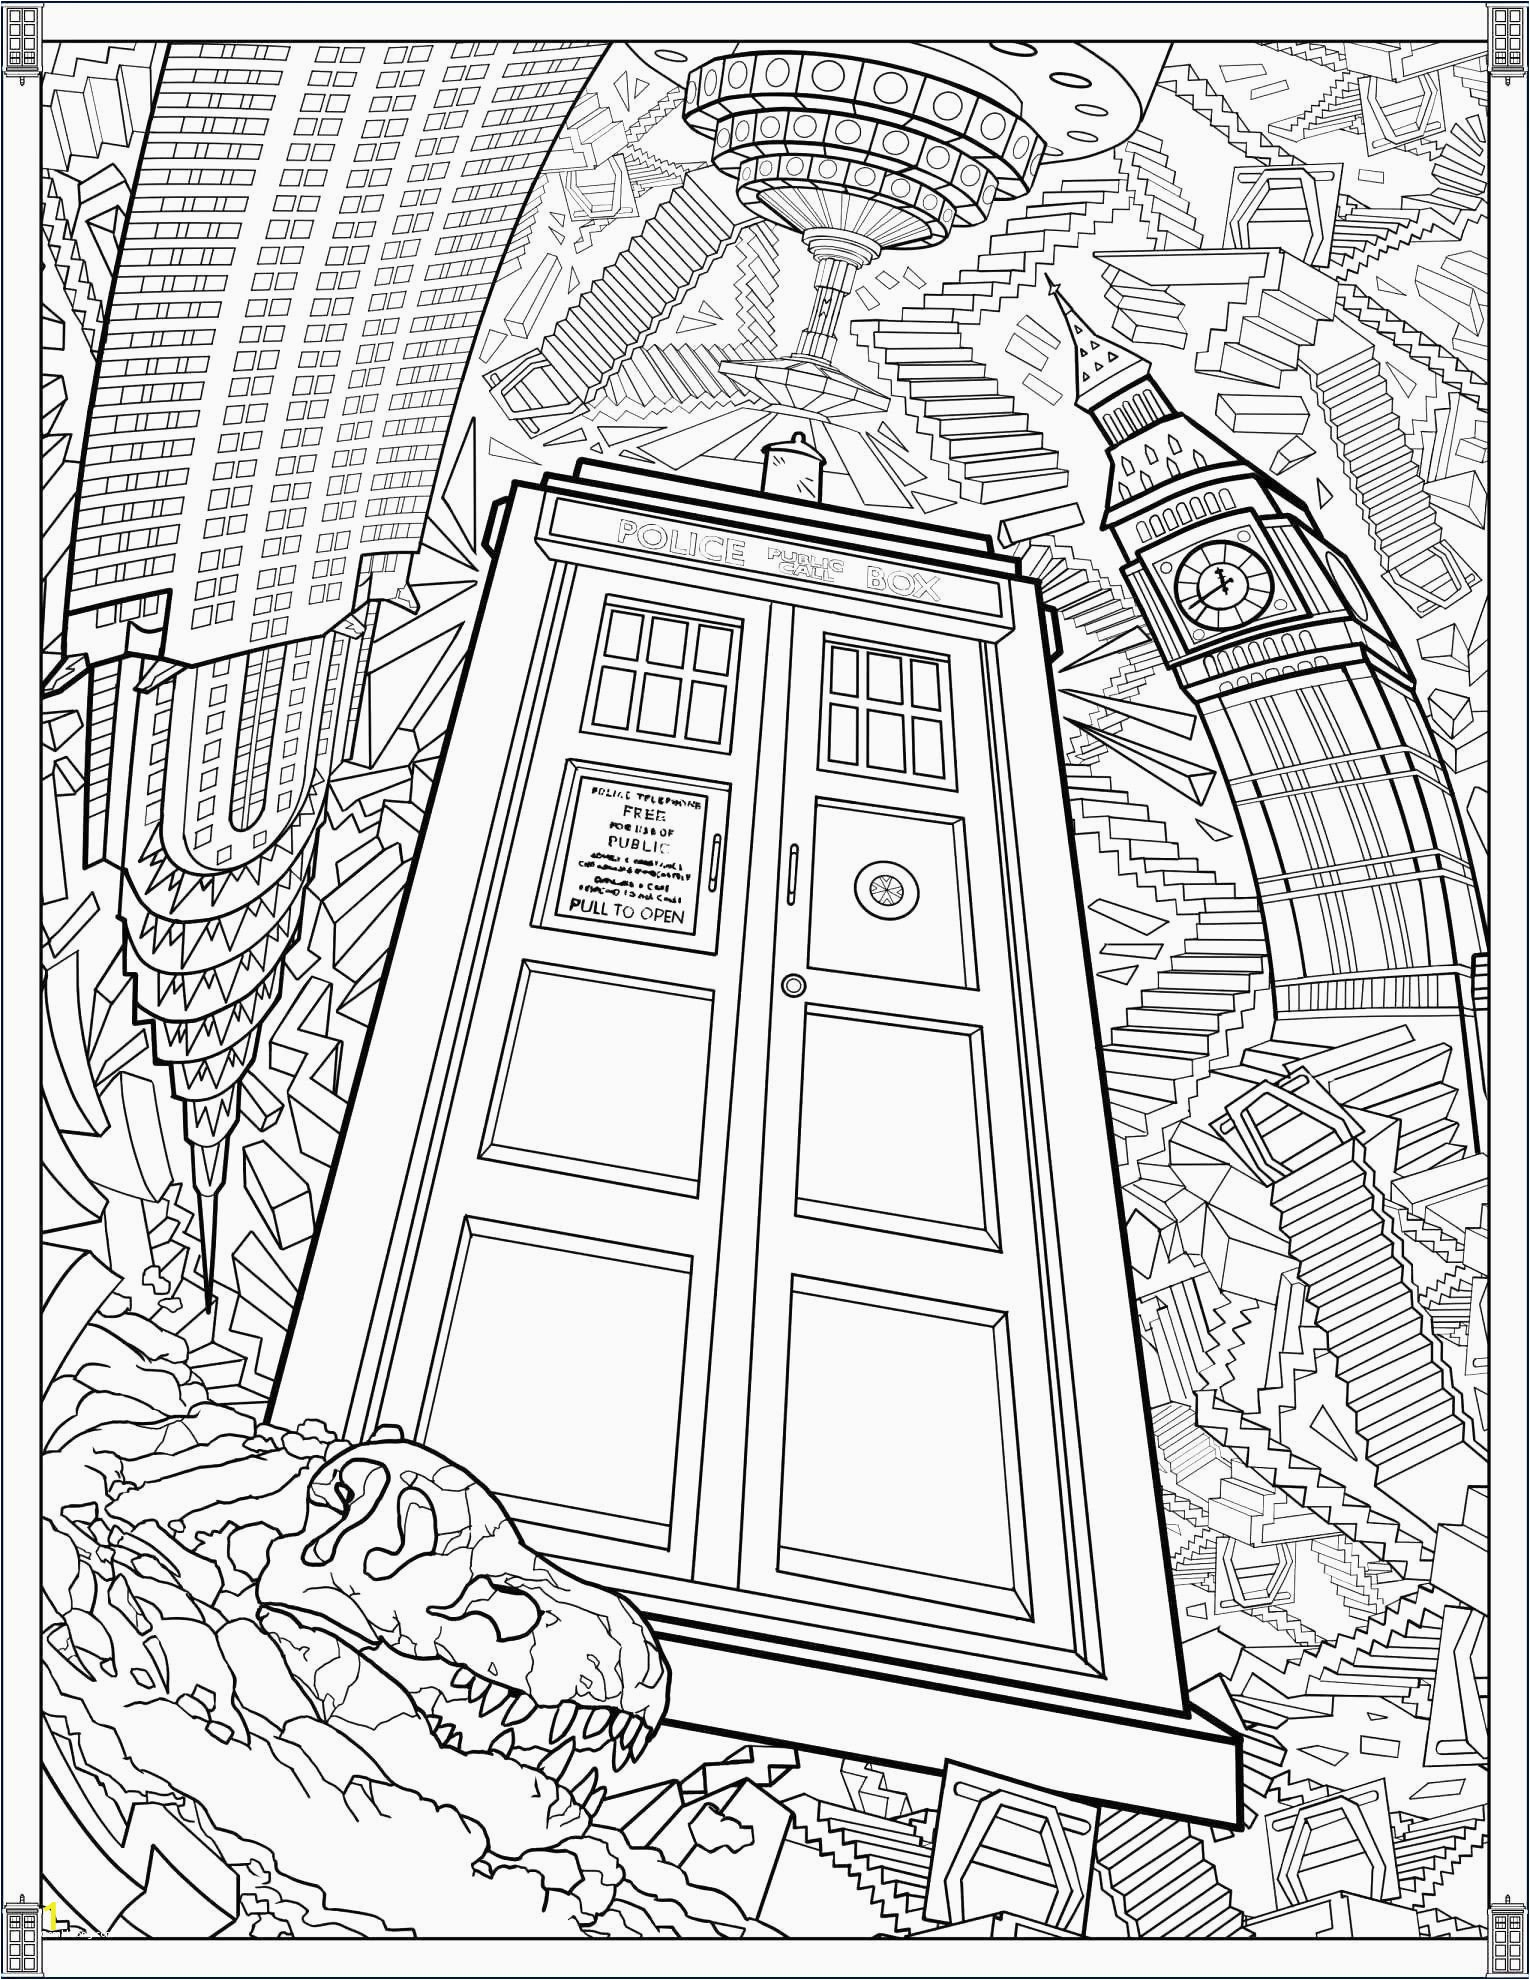 easy printable coloring pages for adults awesome coloring pages coloring book coloringultiplicationng of easy printable coloring pages for adults